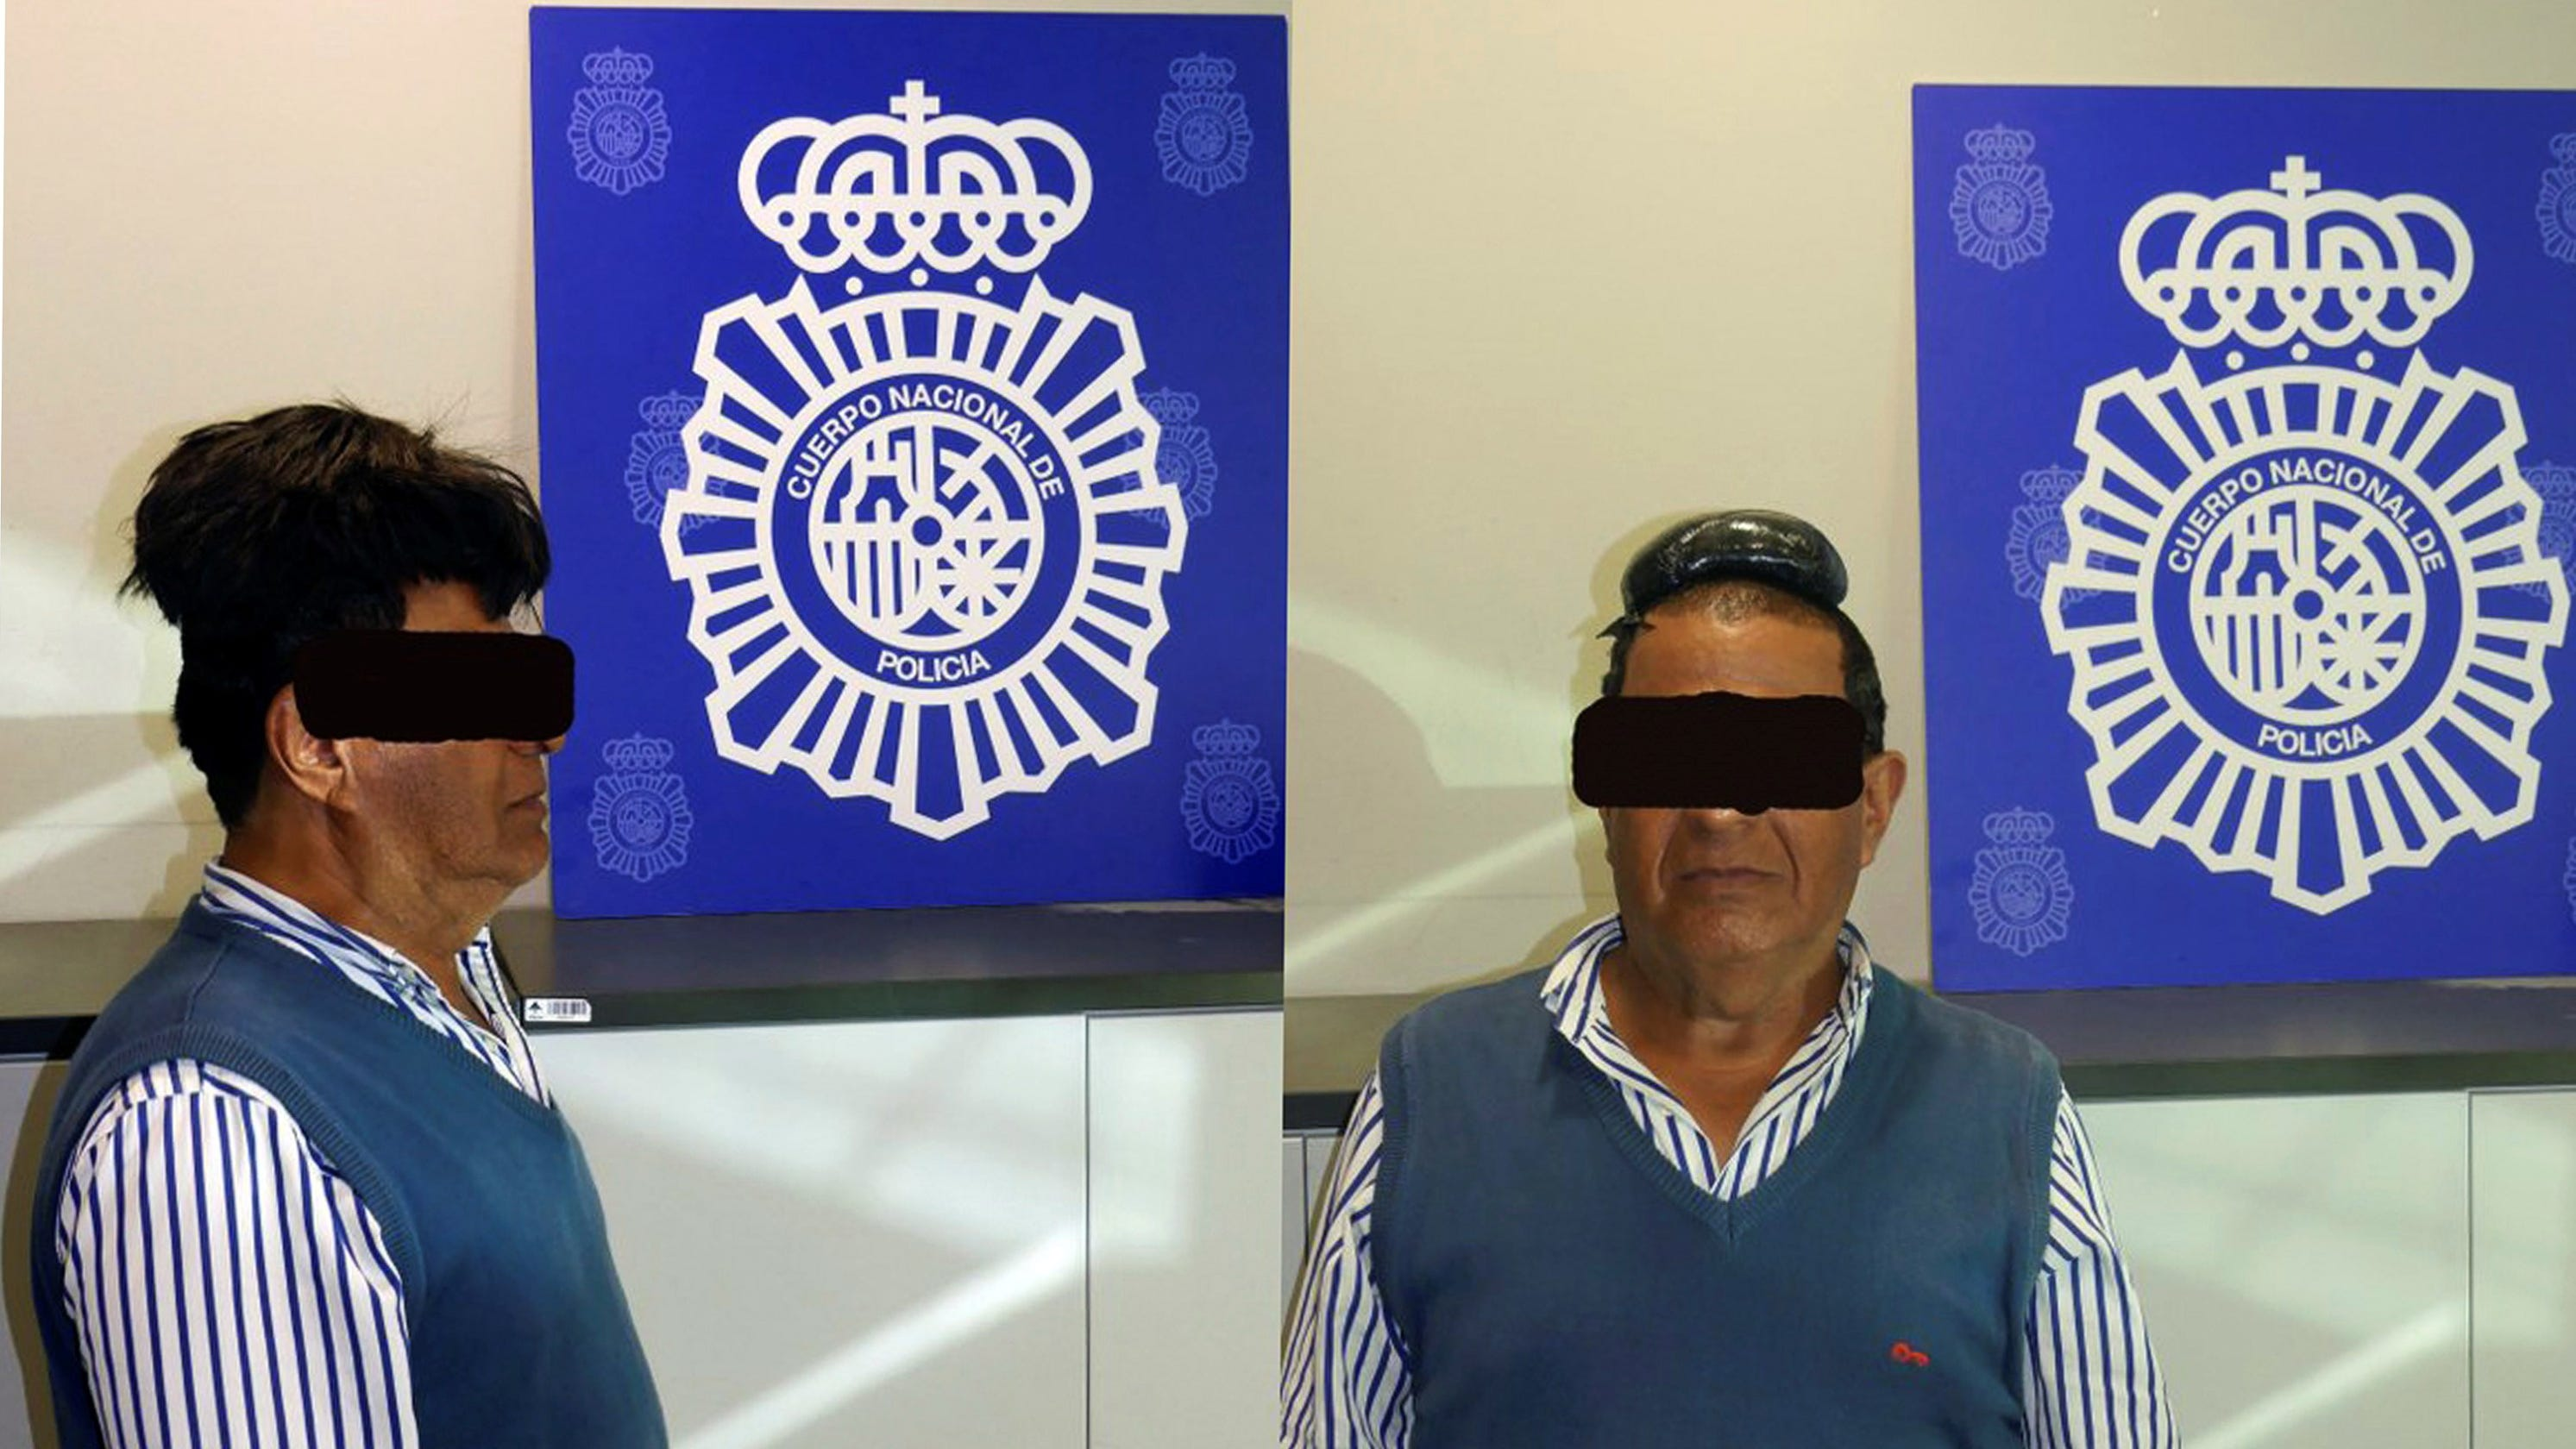 A man tried to smuggle cocaine under his bad wig. He was detained in Spain